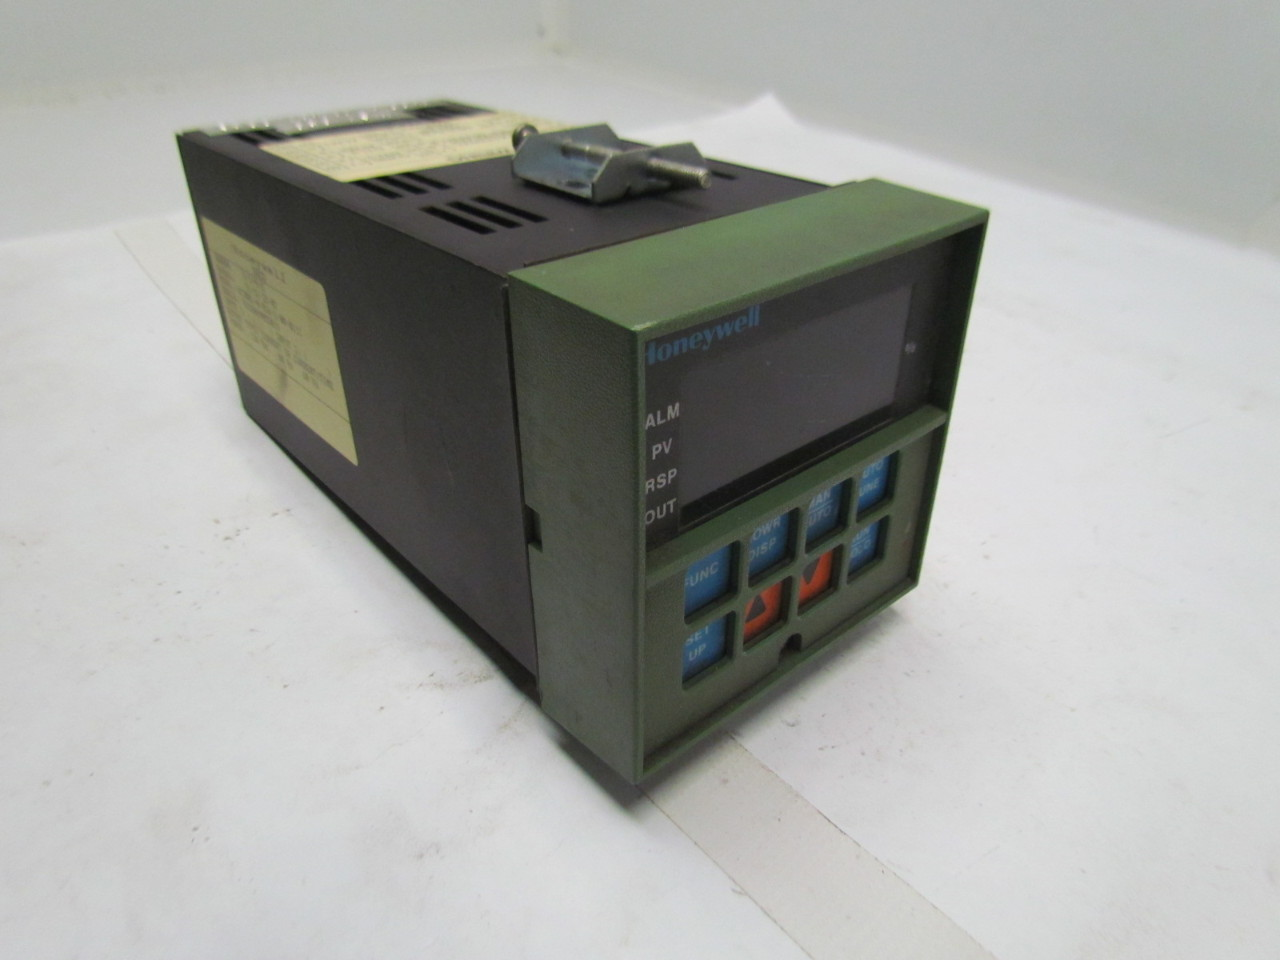 honeywell temperature controller how to use